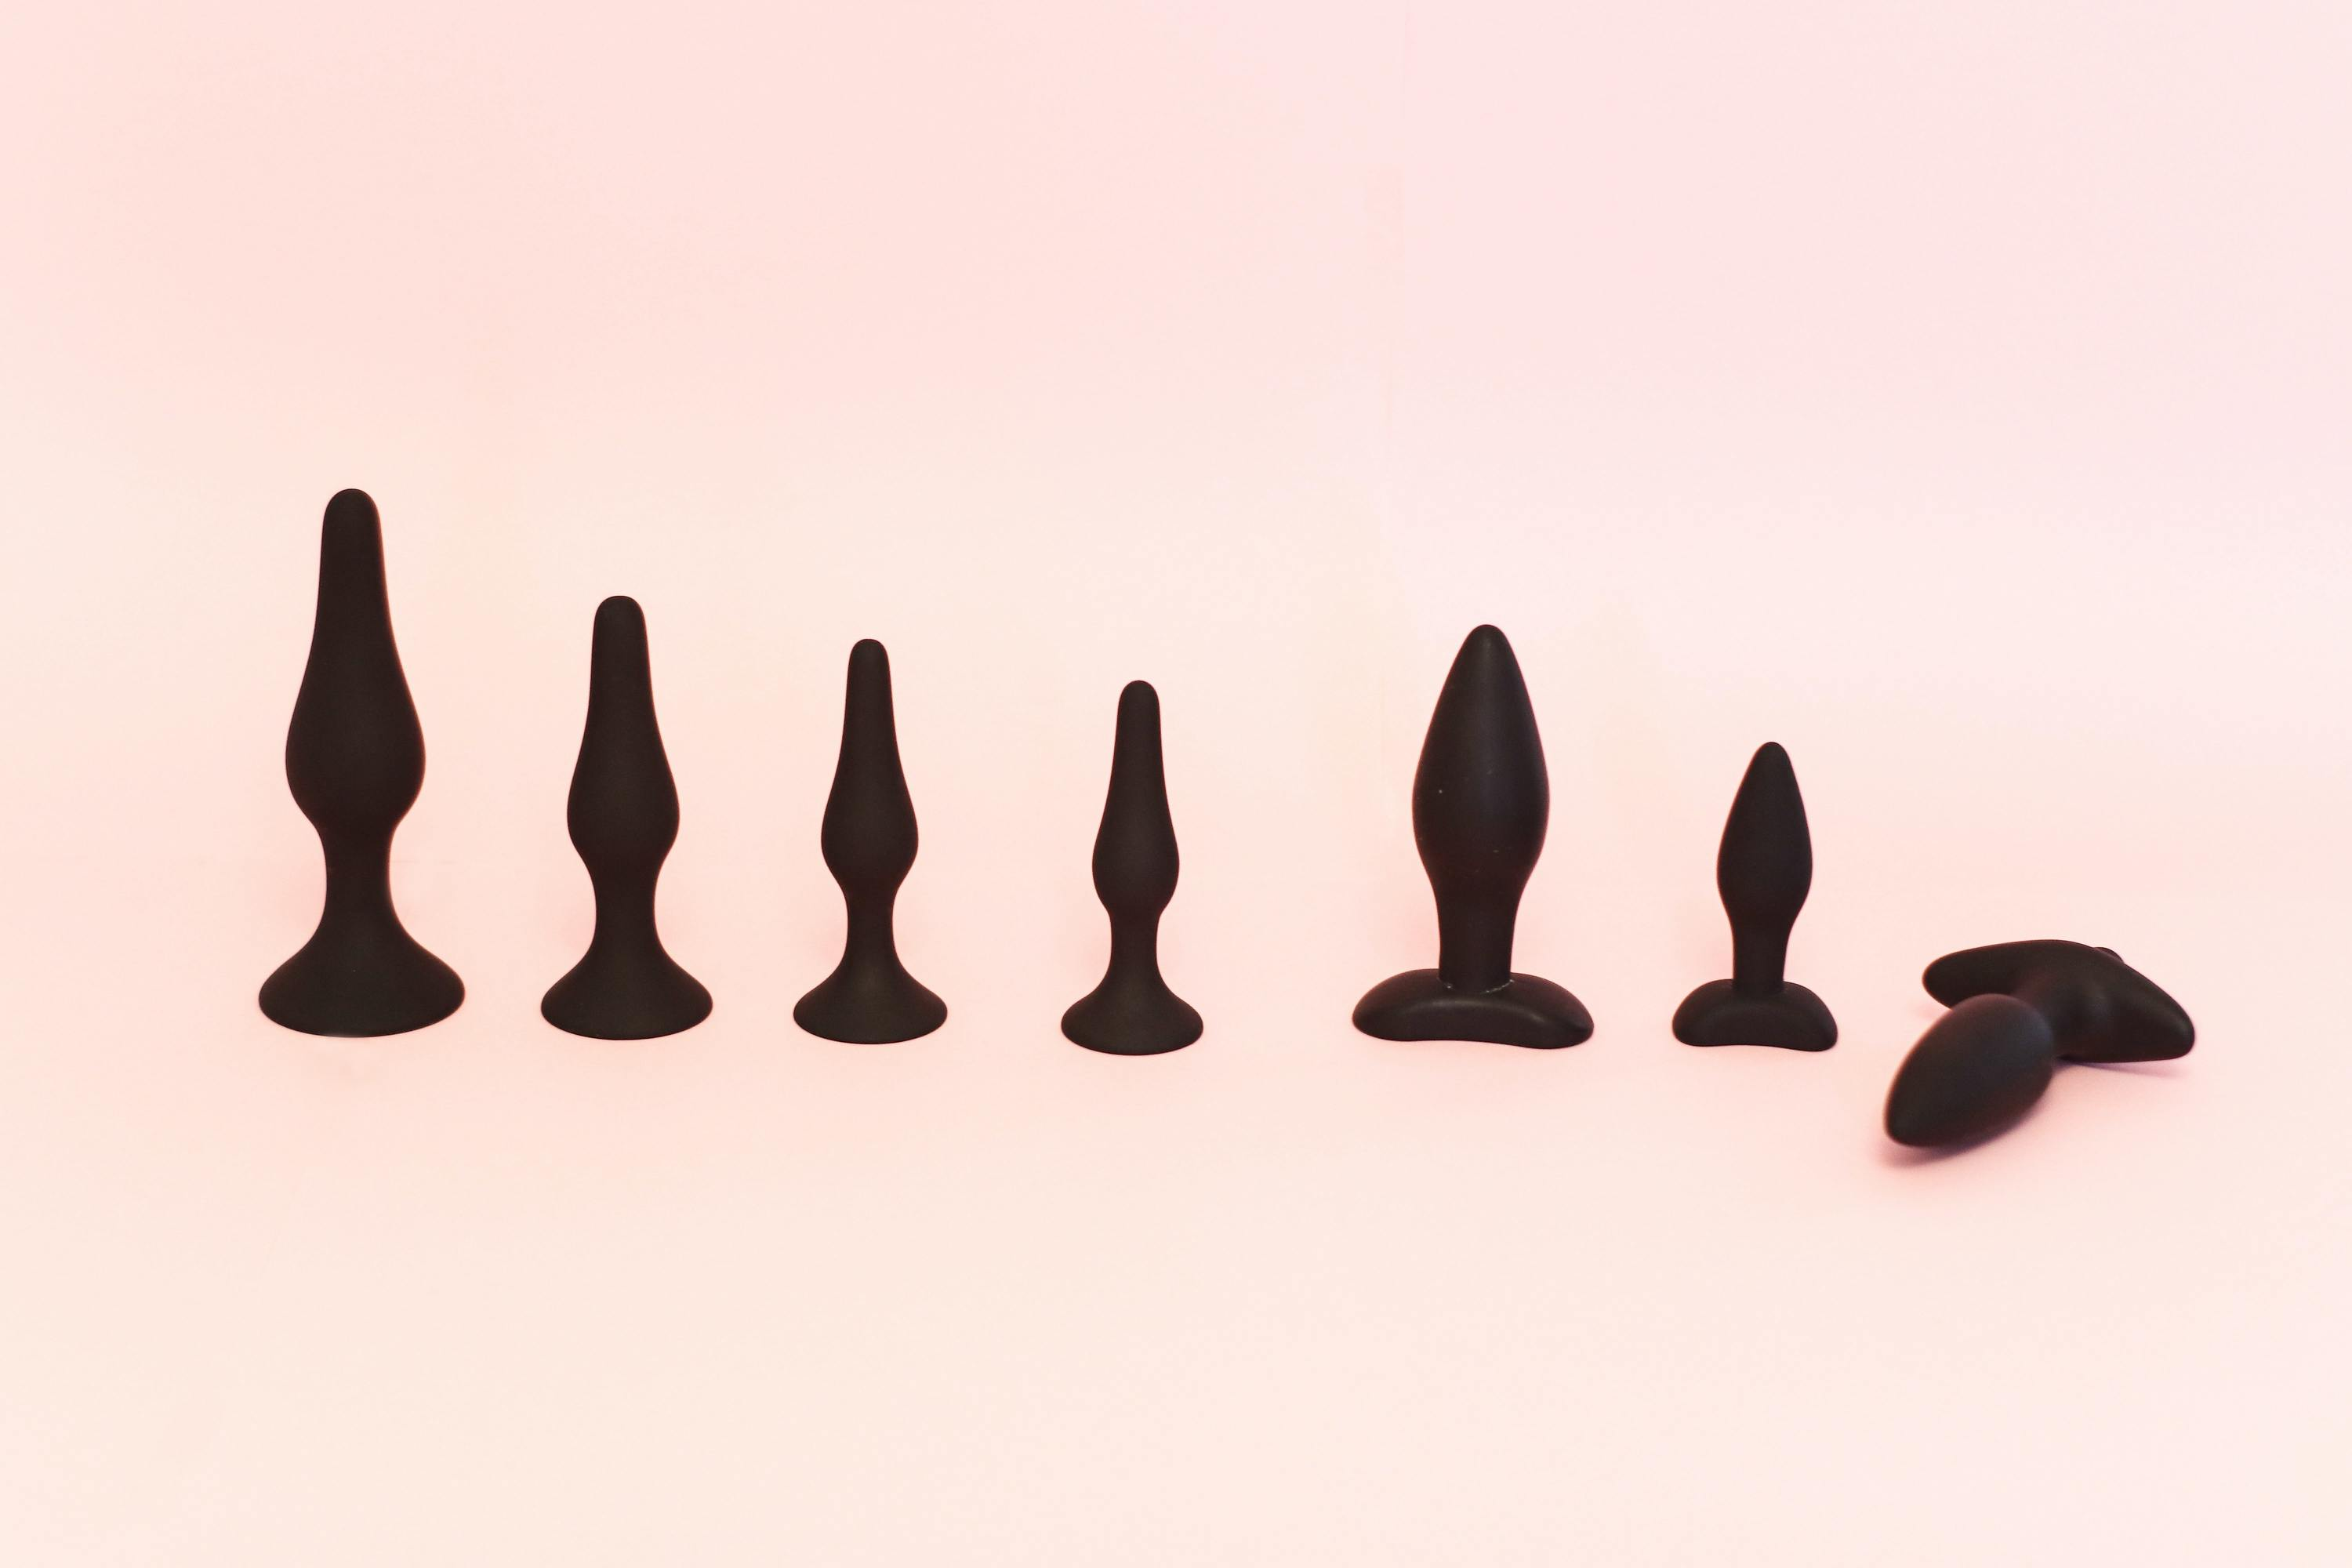 Generic sex toys in a line